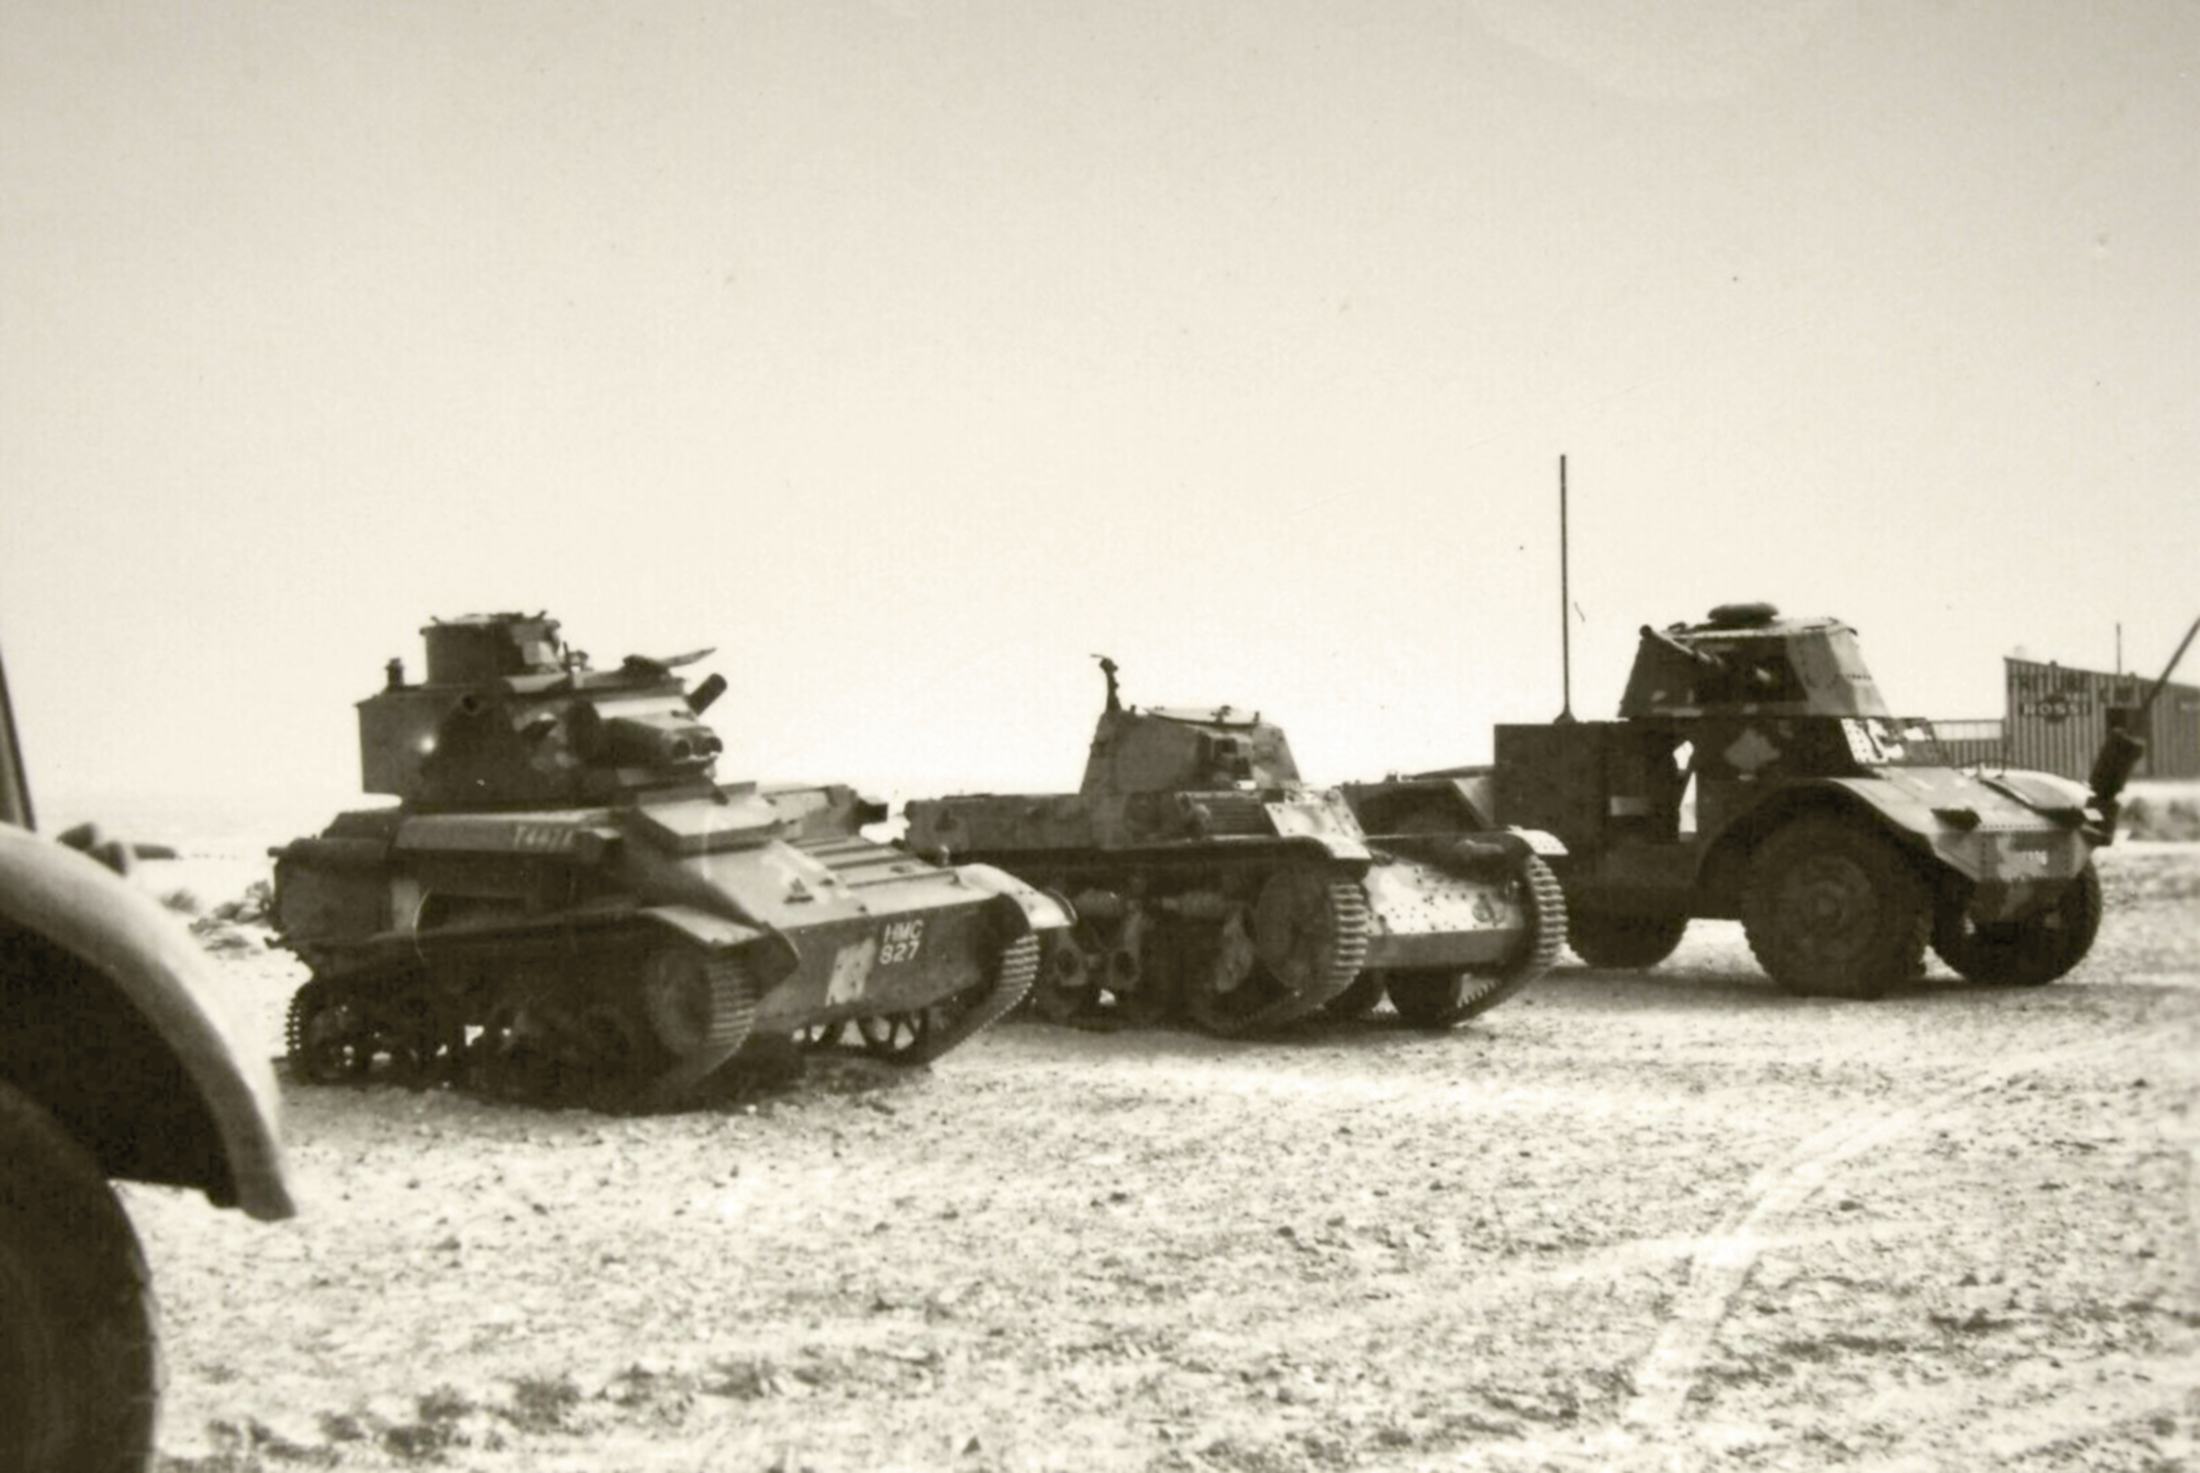 Vickers Light Tank with French Renault AMC 35 n AMD 38 Panhard P178 France 1940 ebay 01